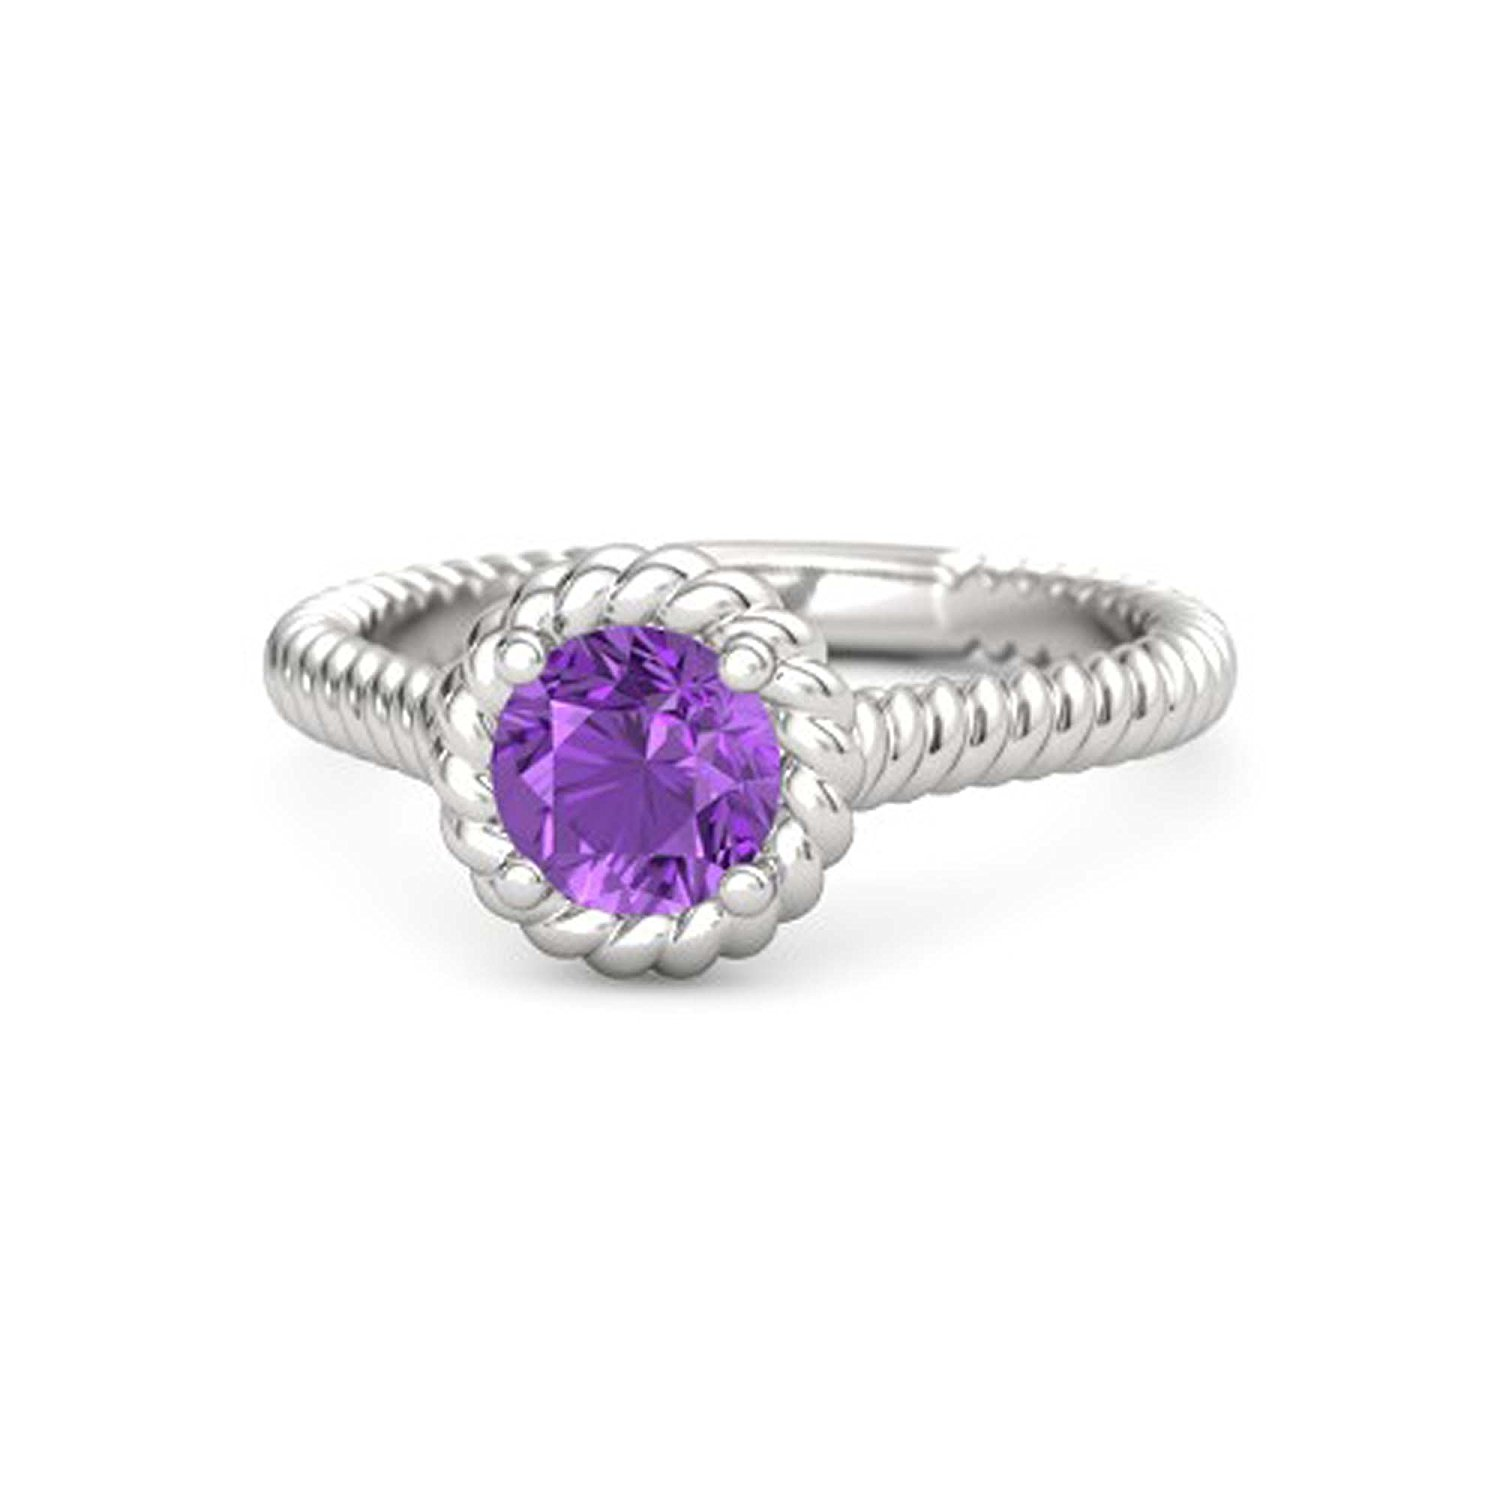 Womens Jewelry 14k Gold White/Yellow/Rose/ Plated Alloy 6MM Round Created Amethyst Twisted Twine Solitaire Engagement Ring